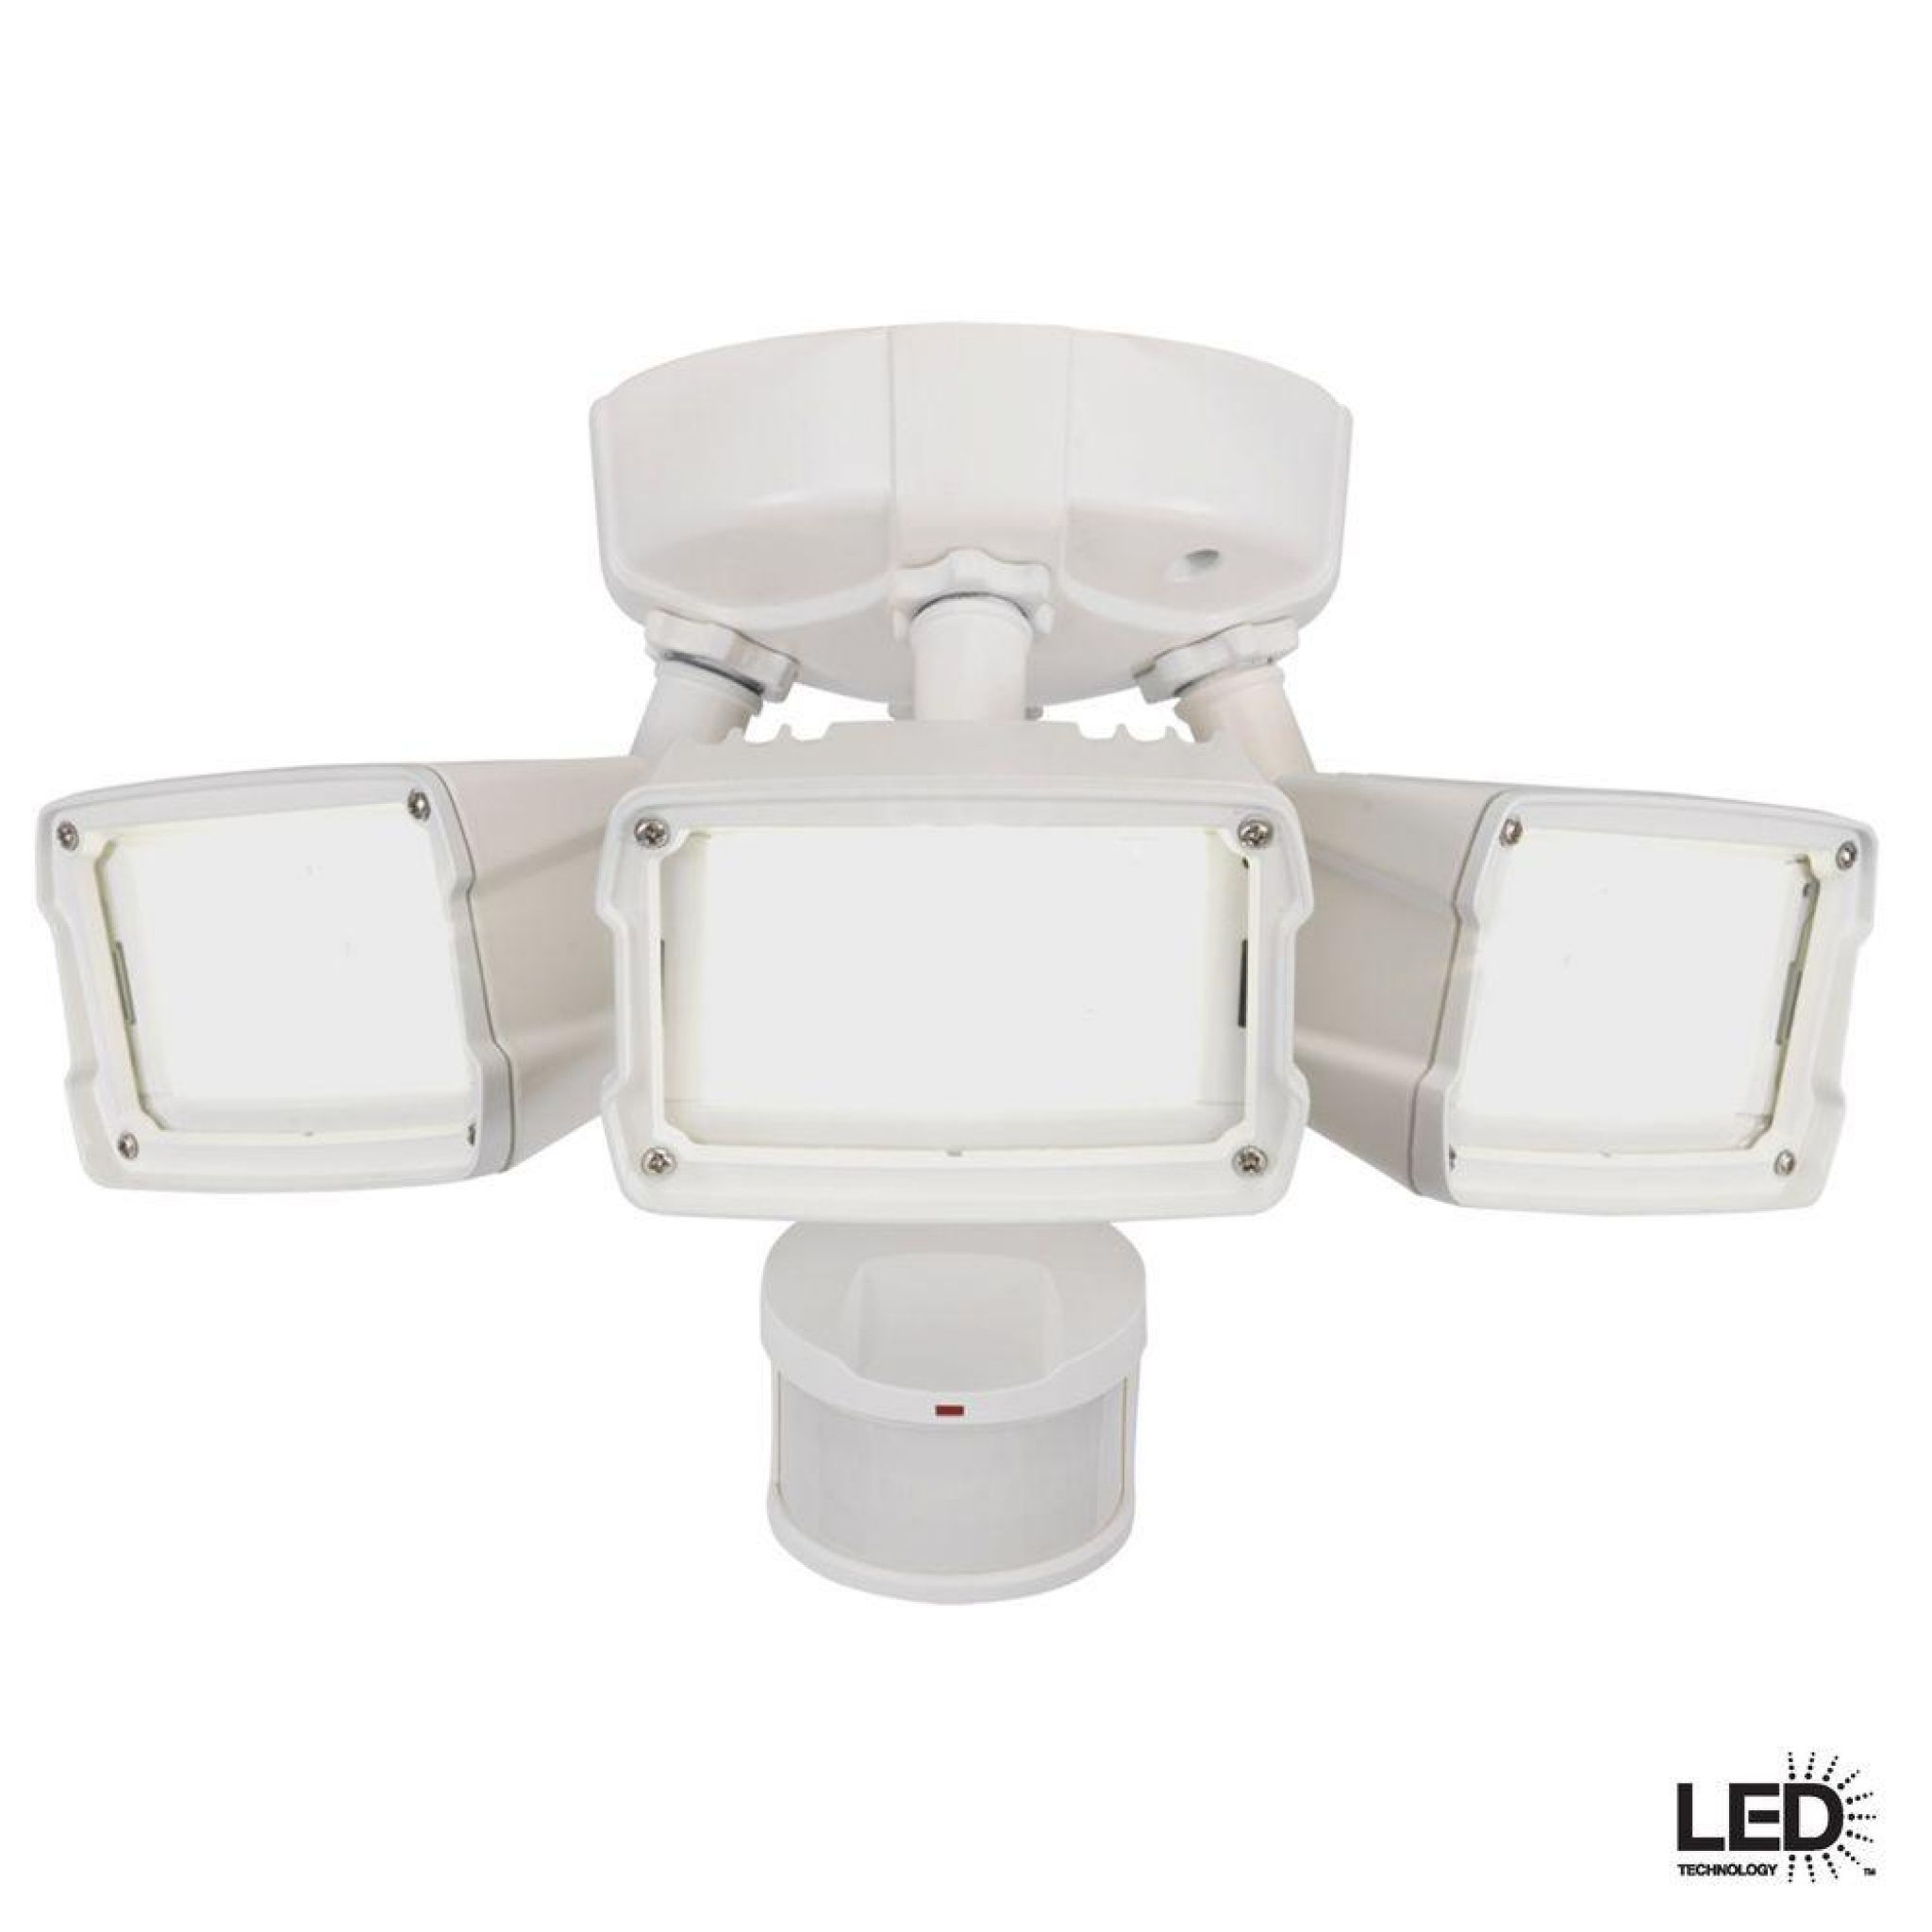 Outdoor security lights home depot best interior paint colors outdoor security lights home depot best interior paint colors check more at http aloadofball Image collections